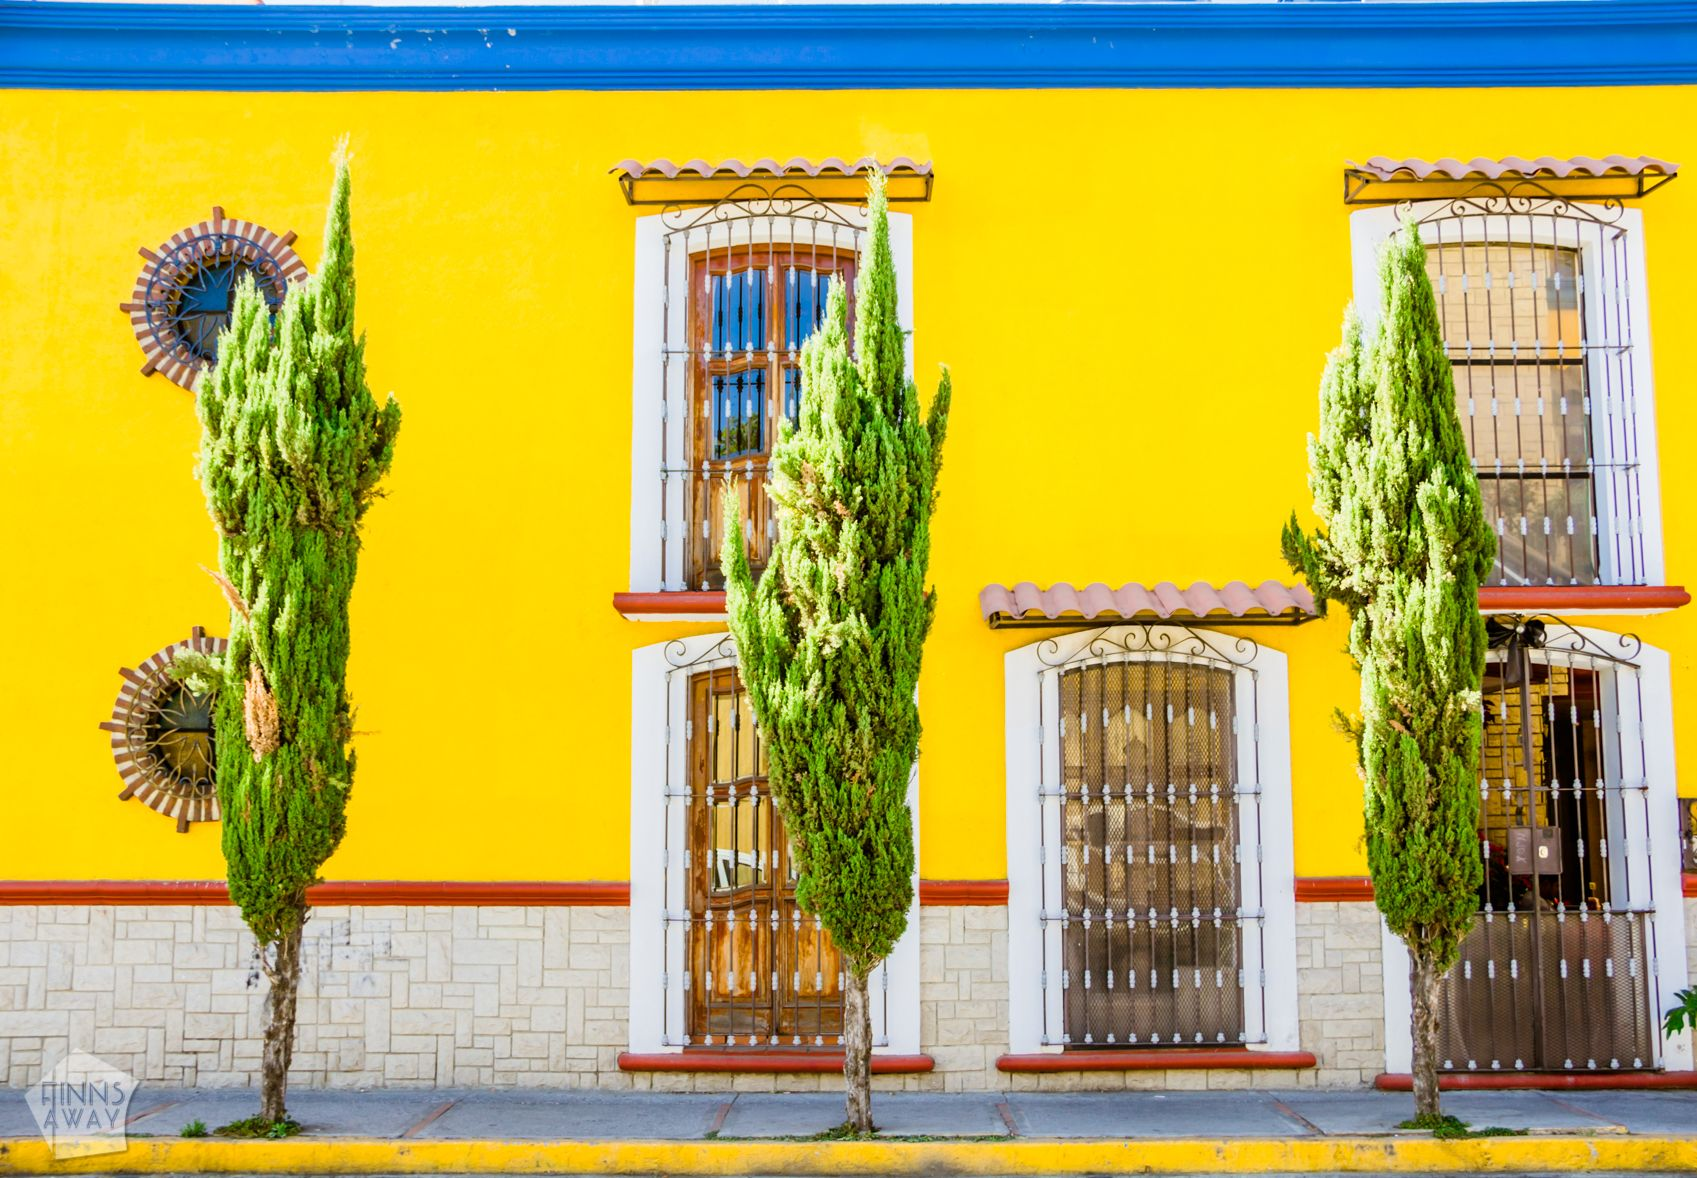 Beautiful house in Cholula | Mexico: Colonial city of Puebla and neighboring Cholula | FinnsAway Travel Blog